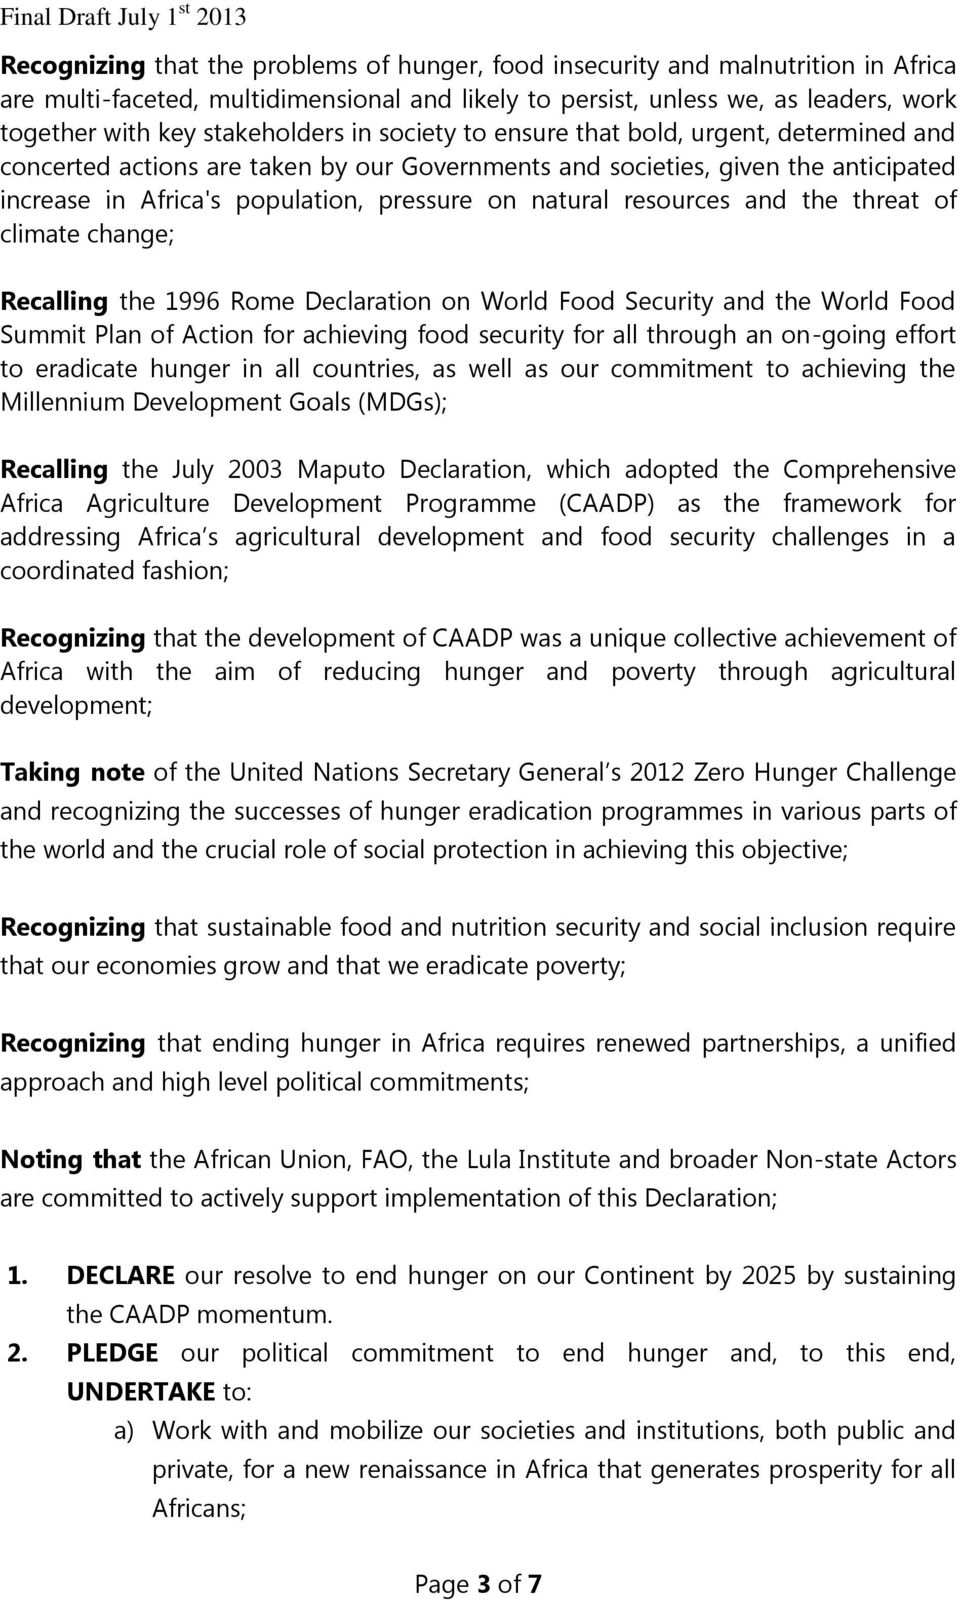 natural resources and the threat of climate change; Recalling the 1996 Rome Declaration on World Food Security and the World Food Summit Plan of Action for achieving food security for all through an